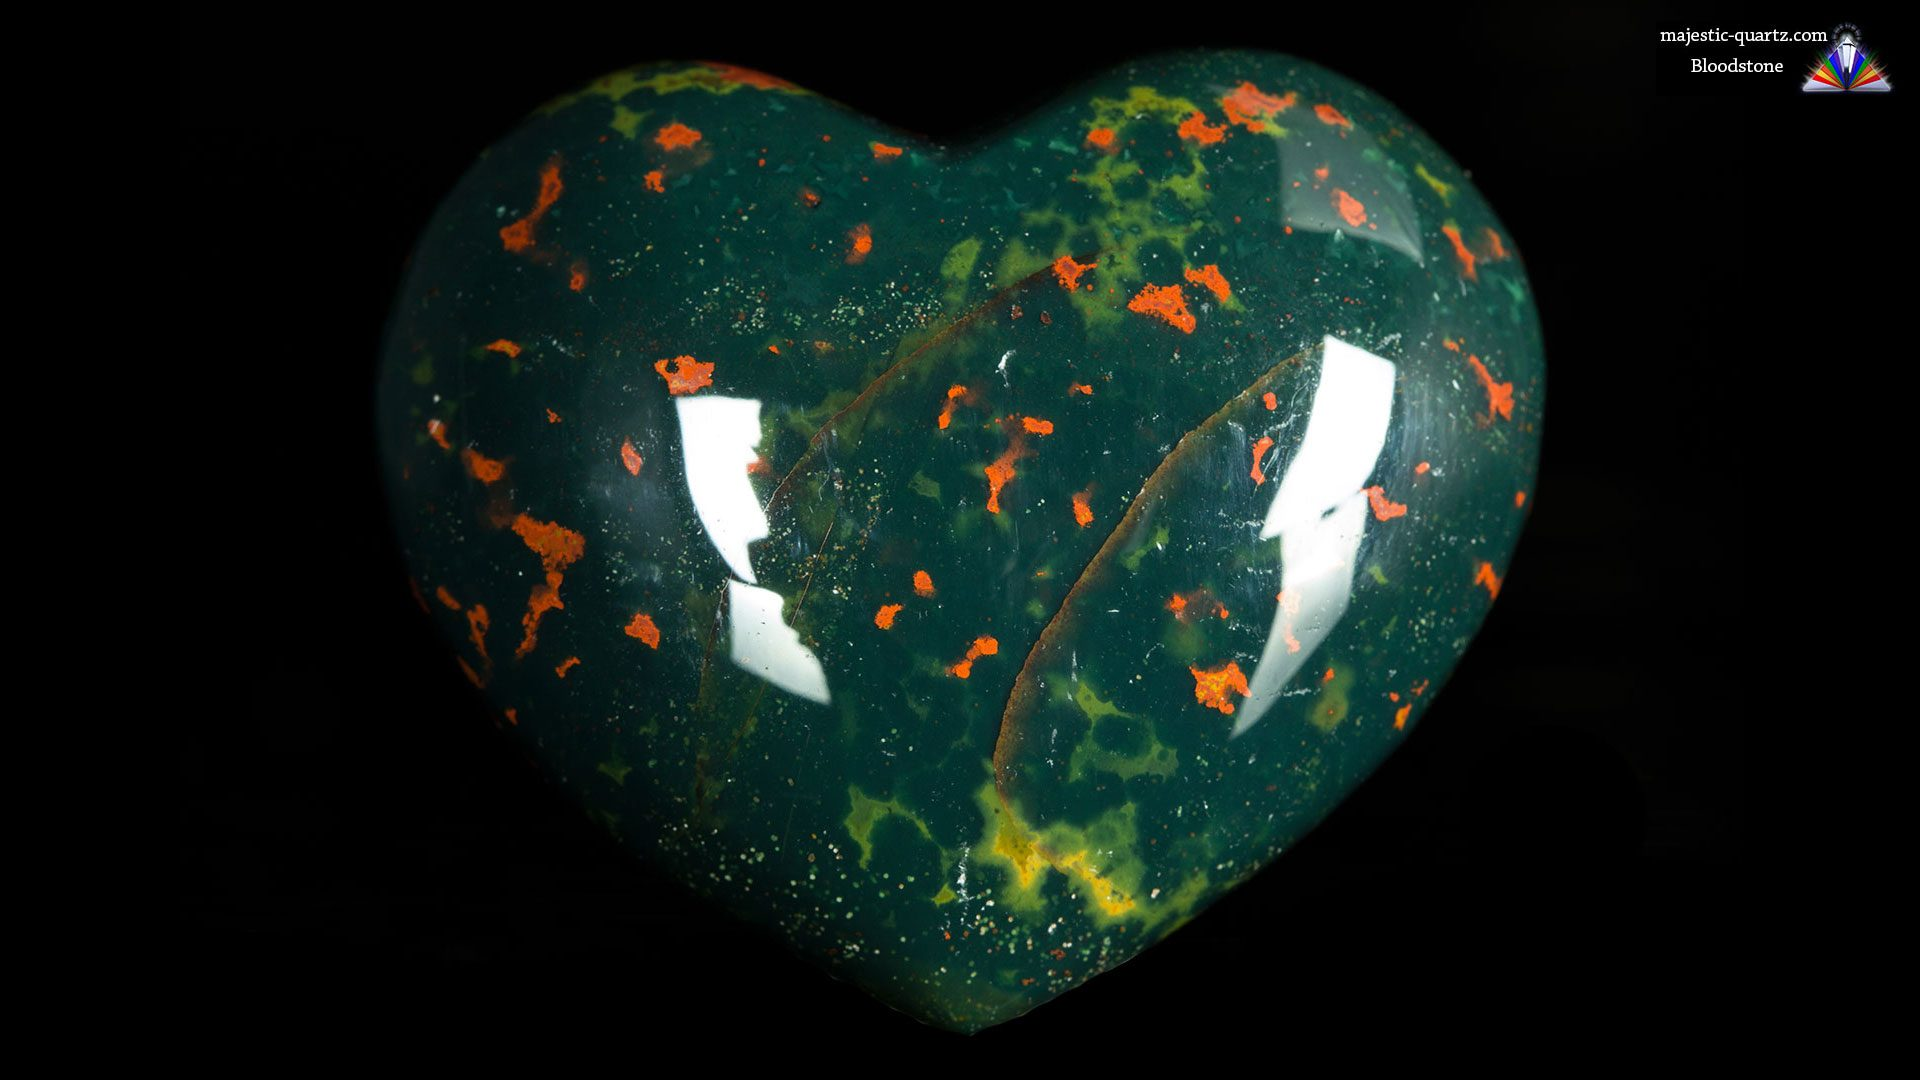 Bloodstone Heart - Photograph by Anthony Bradford